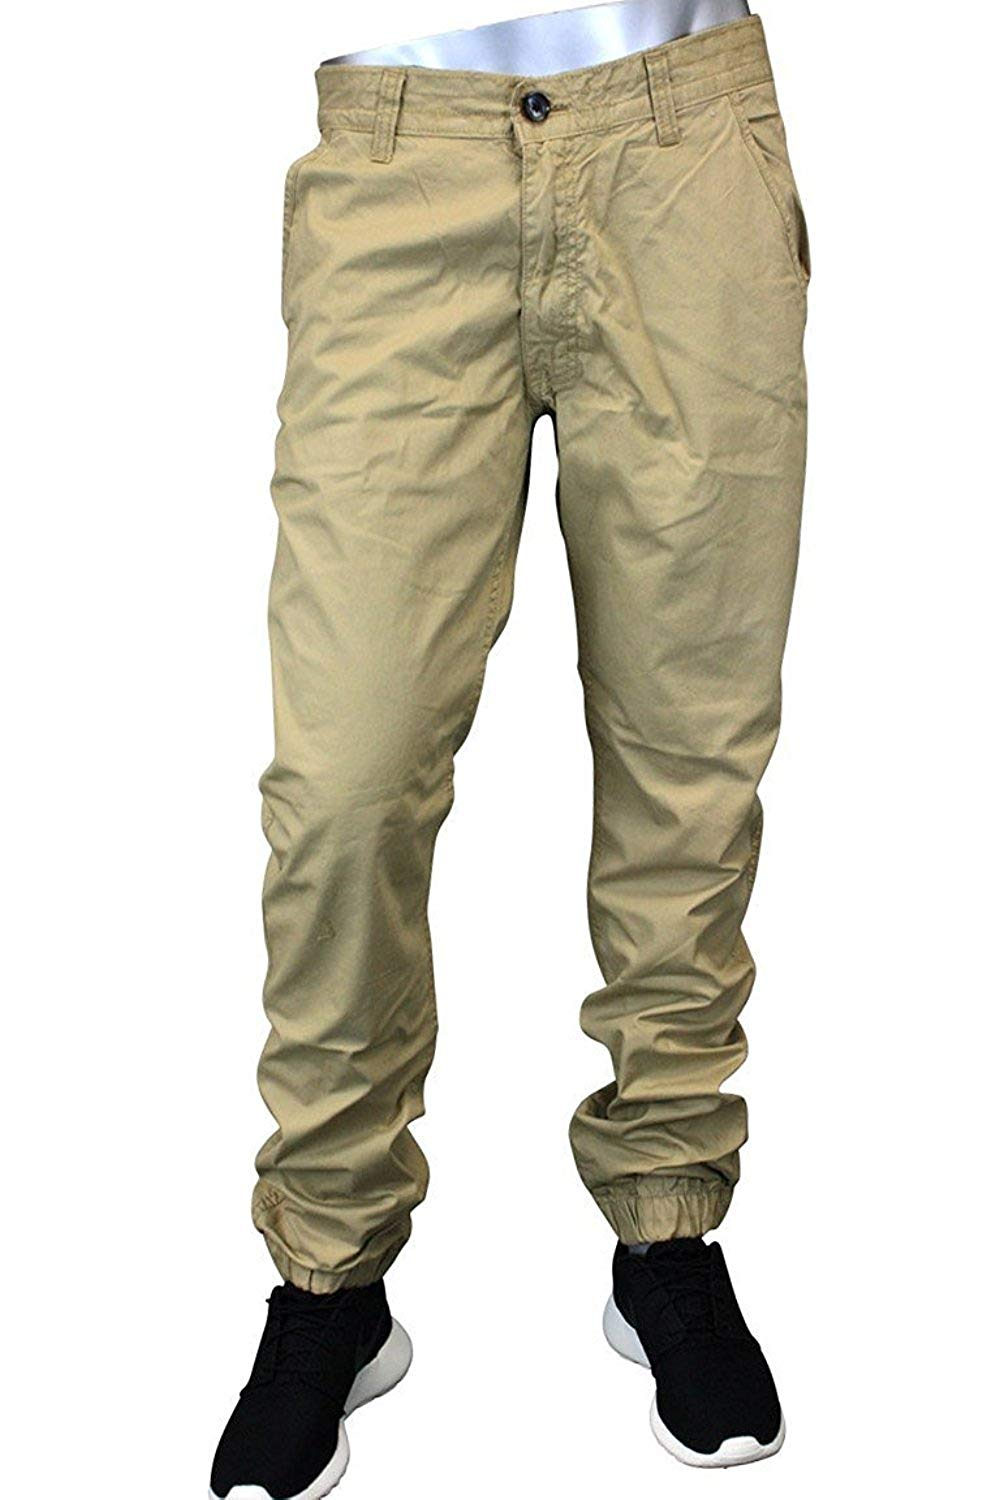 59a27dc4870a78 Get Quotations · Jordan Craig Chino Jogger Pants